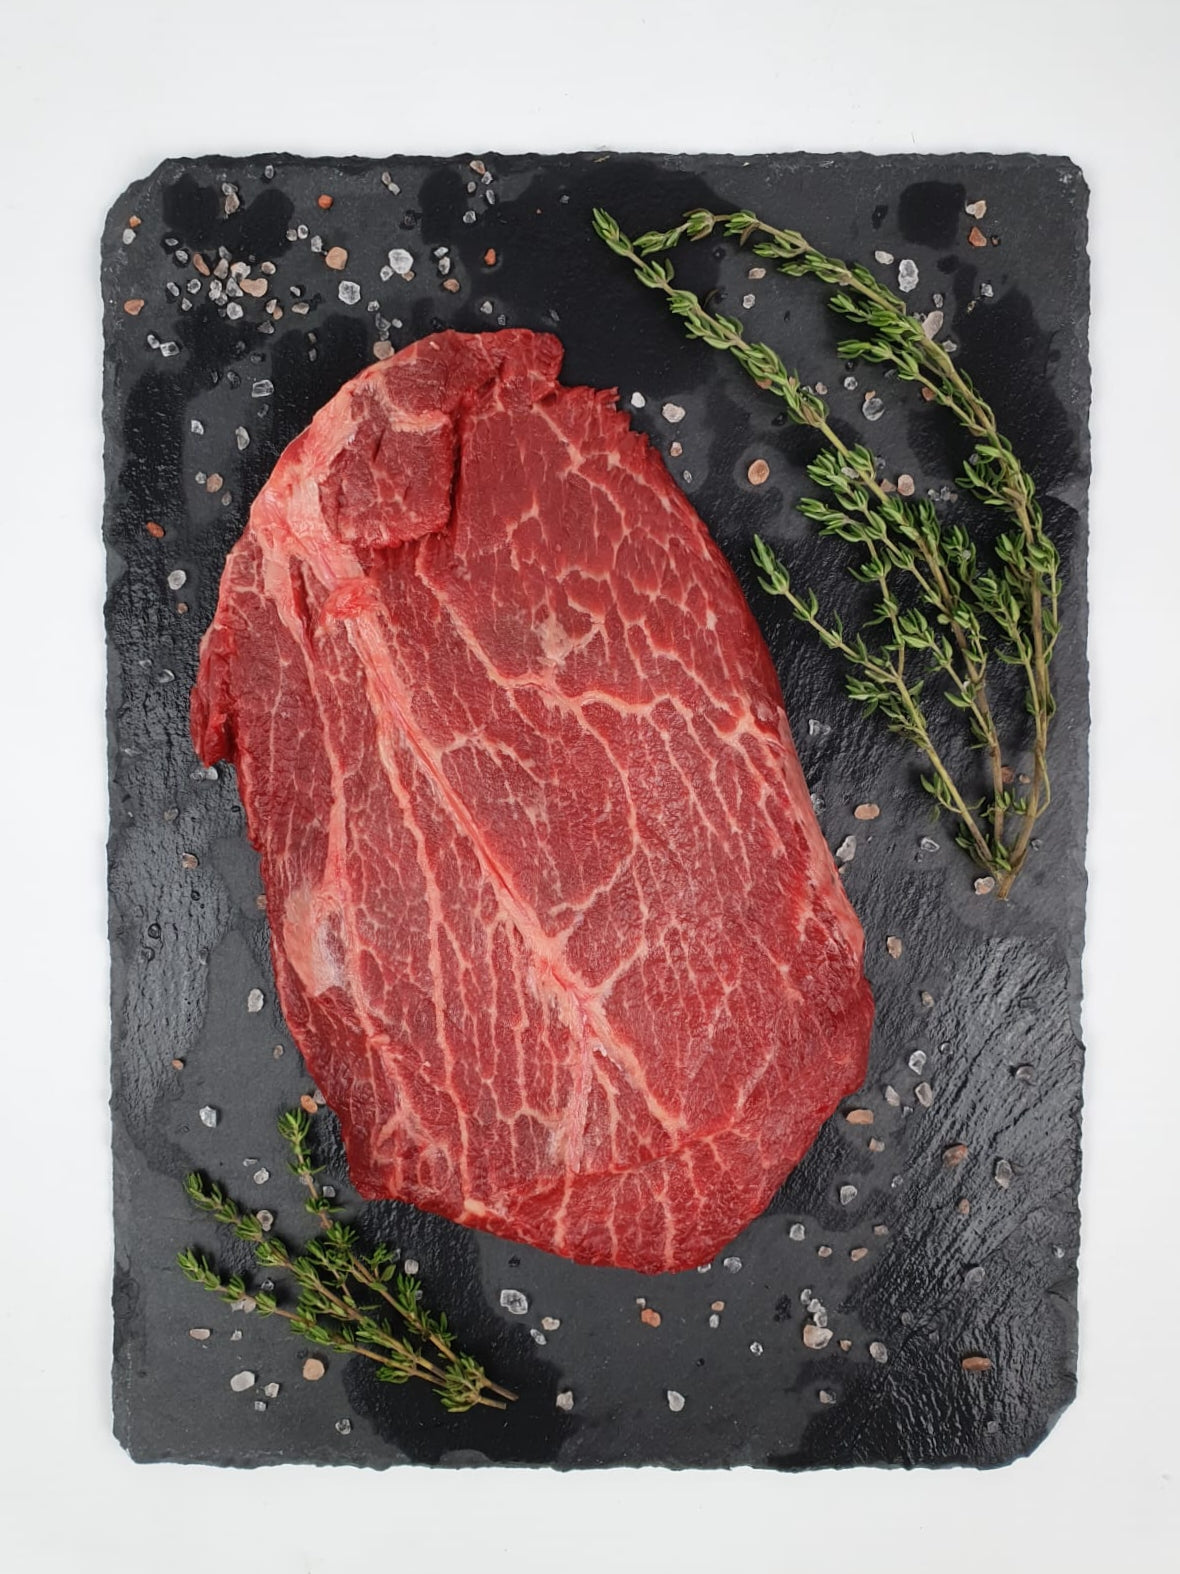 Halal Angus Beef Flat Iron Steak (250-300g)